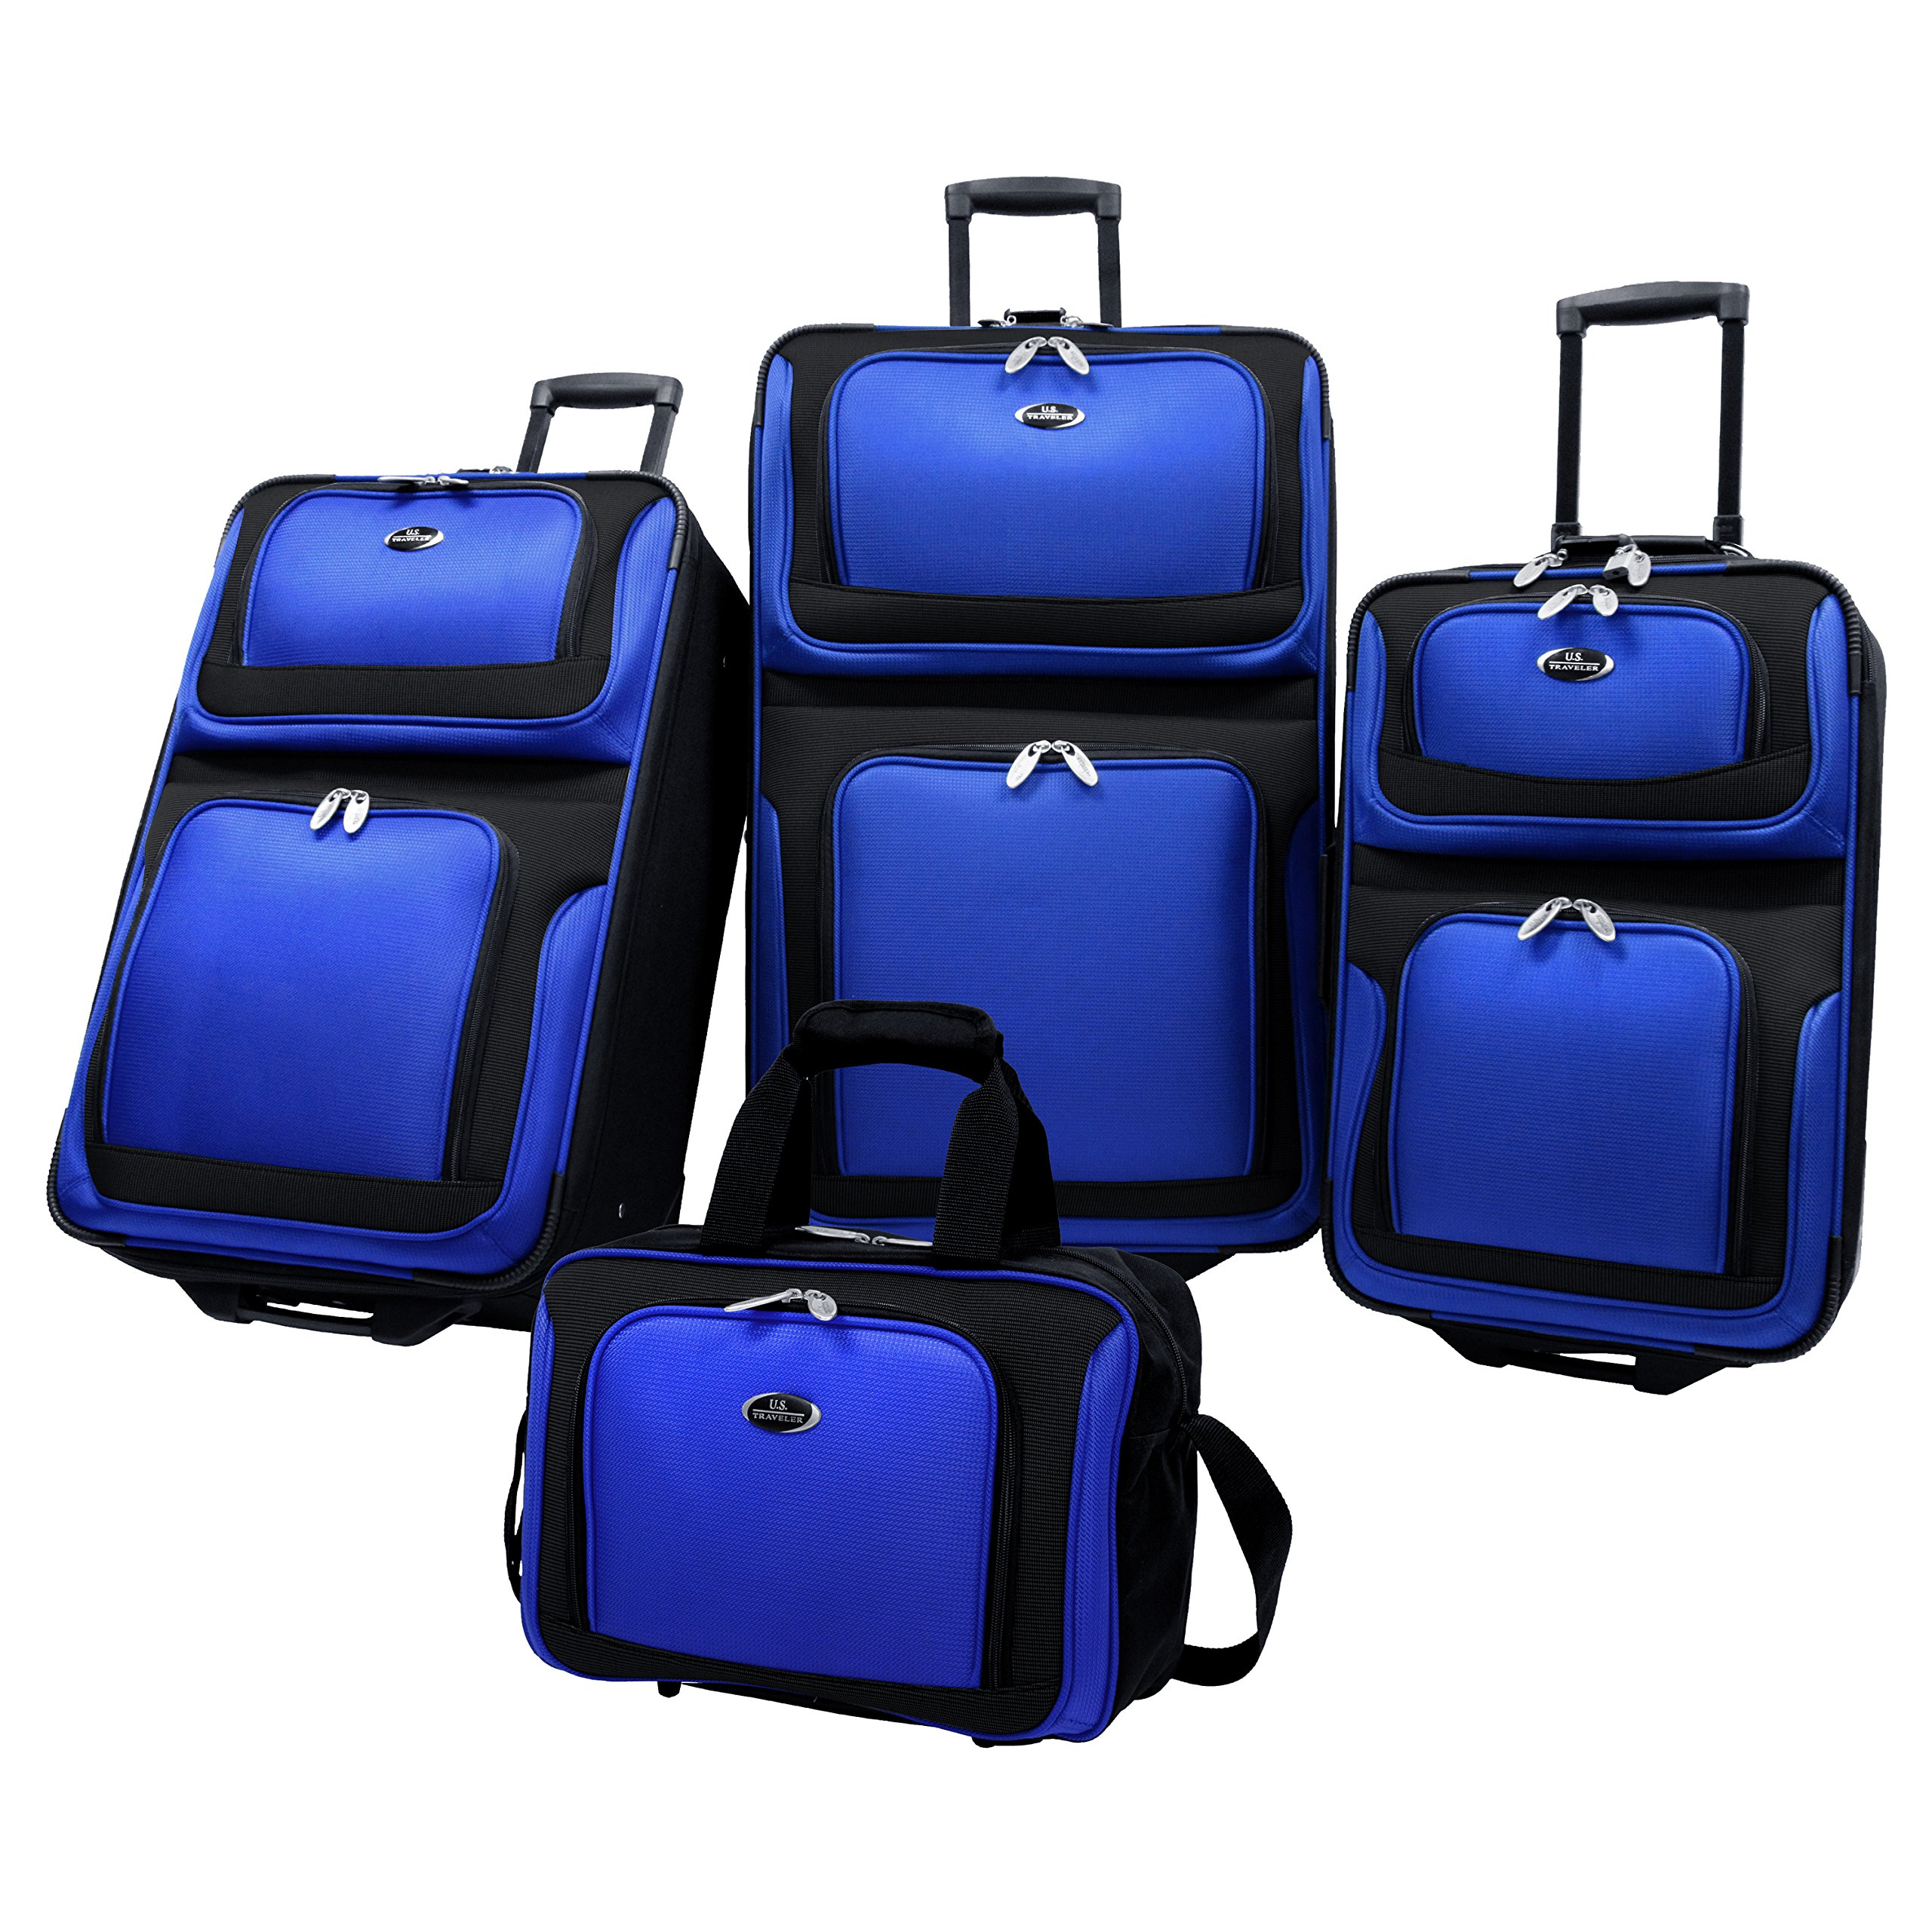 U.S. Traveler New Yorker Lightweight Expandable Rolling Luggage 4-Piece Suitcase Set, Royal Blue by U.S. Traveler